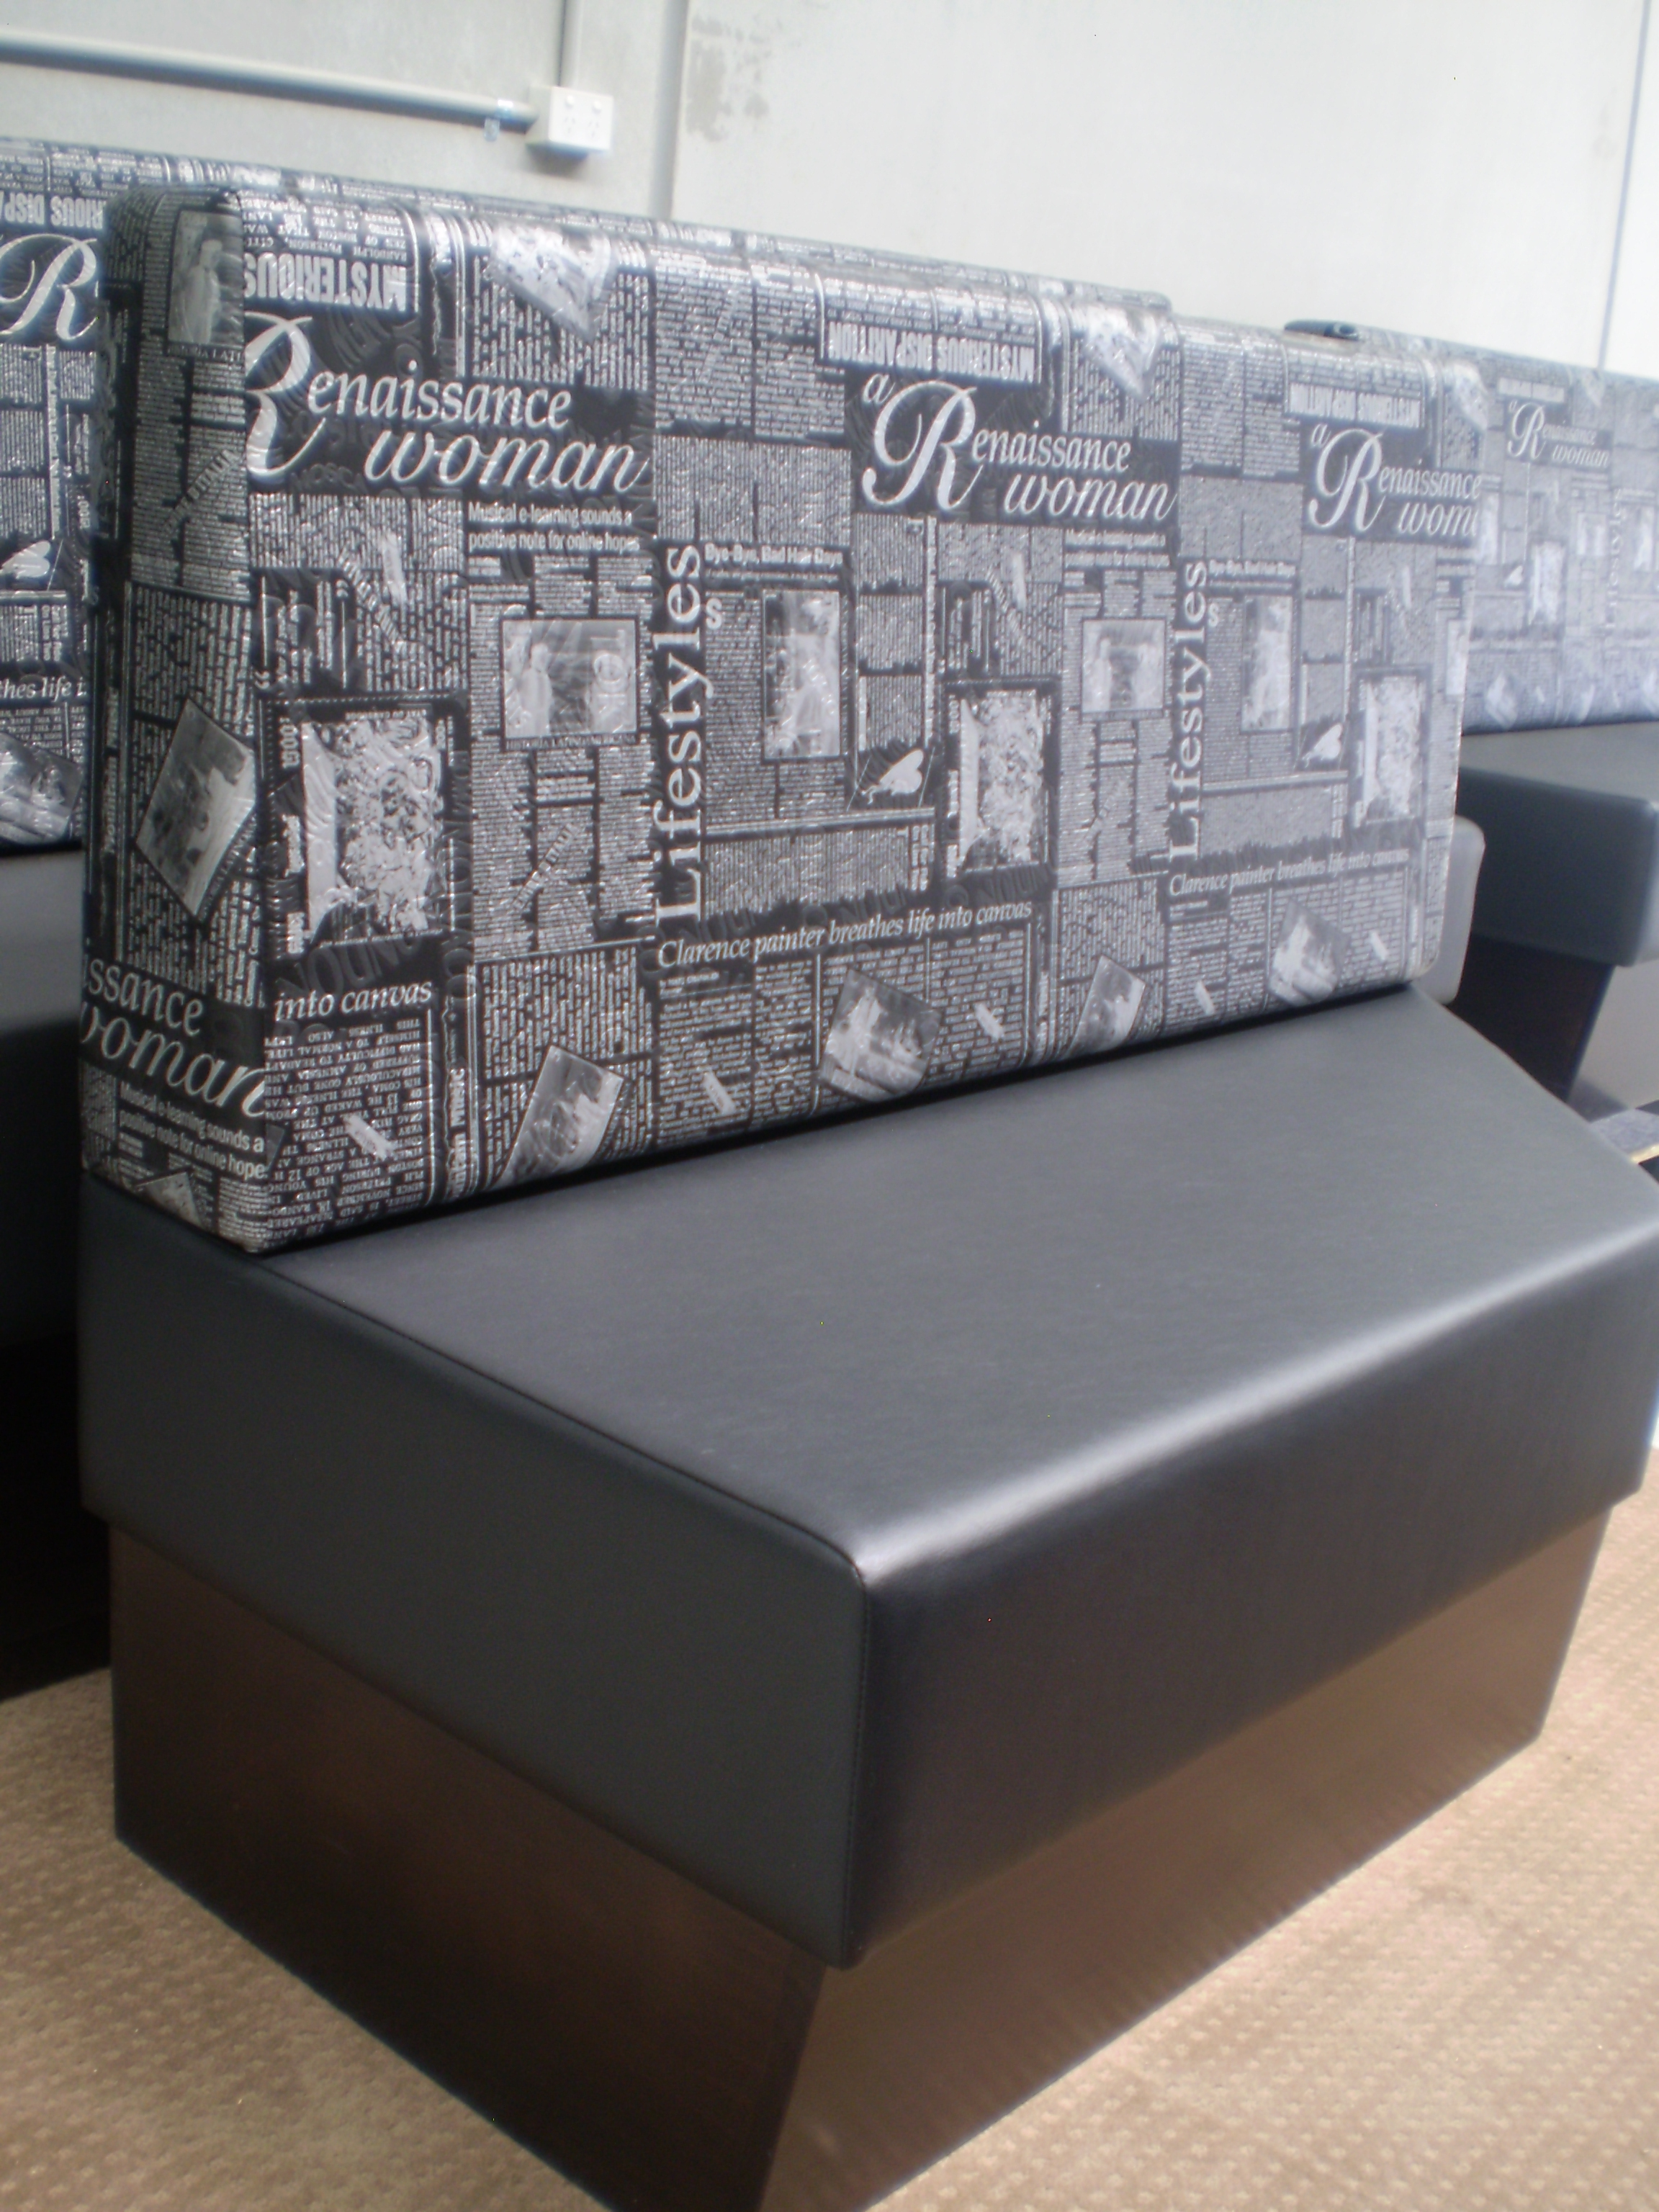 Hospitality Cafe Restaurant Hotel Seats Banquette